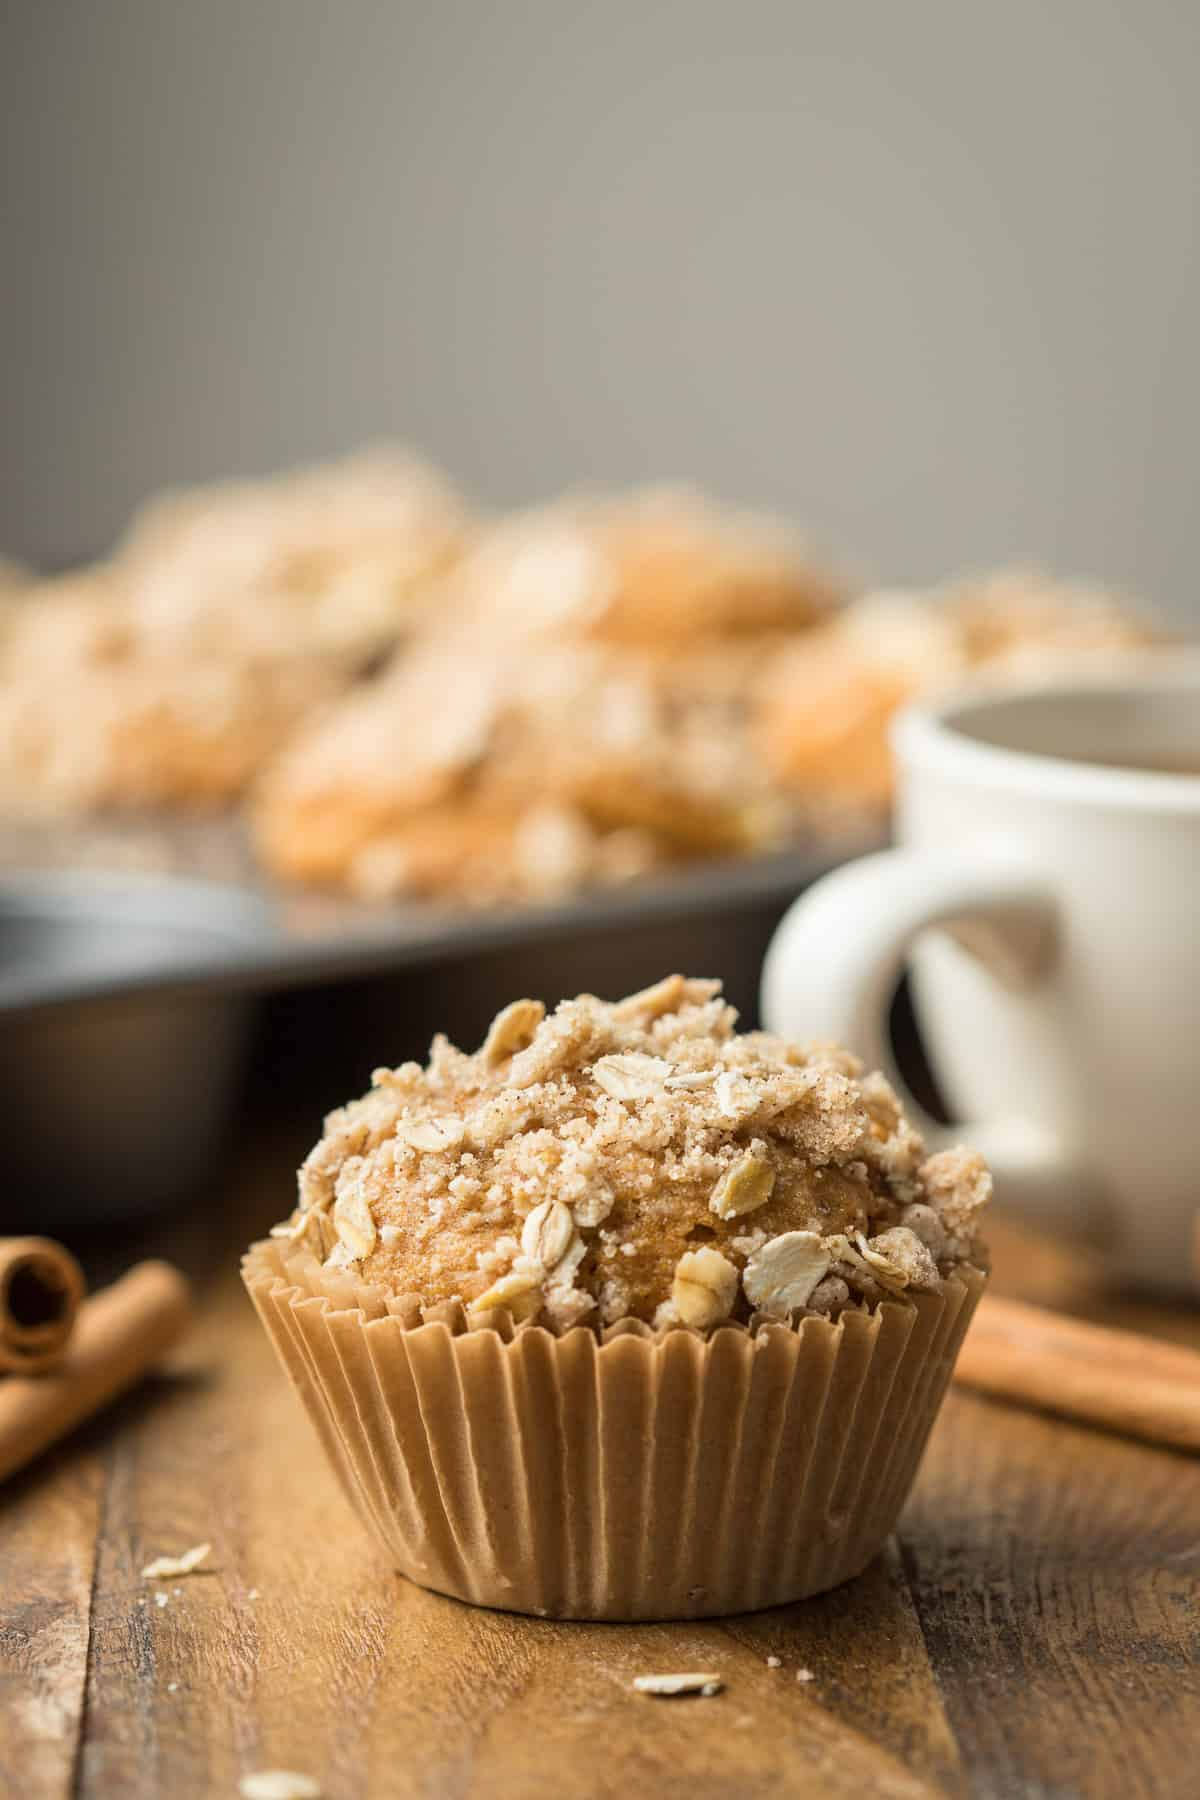 Vegan Pumpkin Muffin with coffee cup and muffin tin in the background.